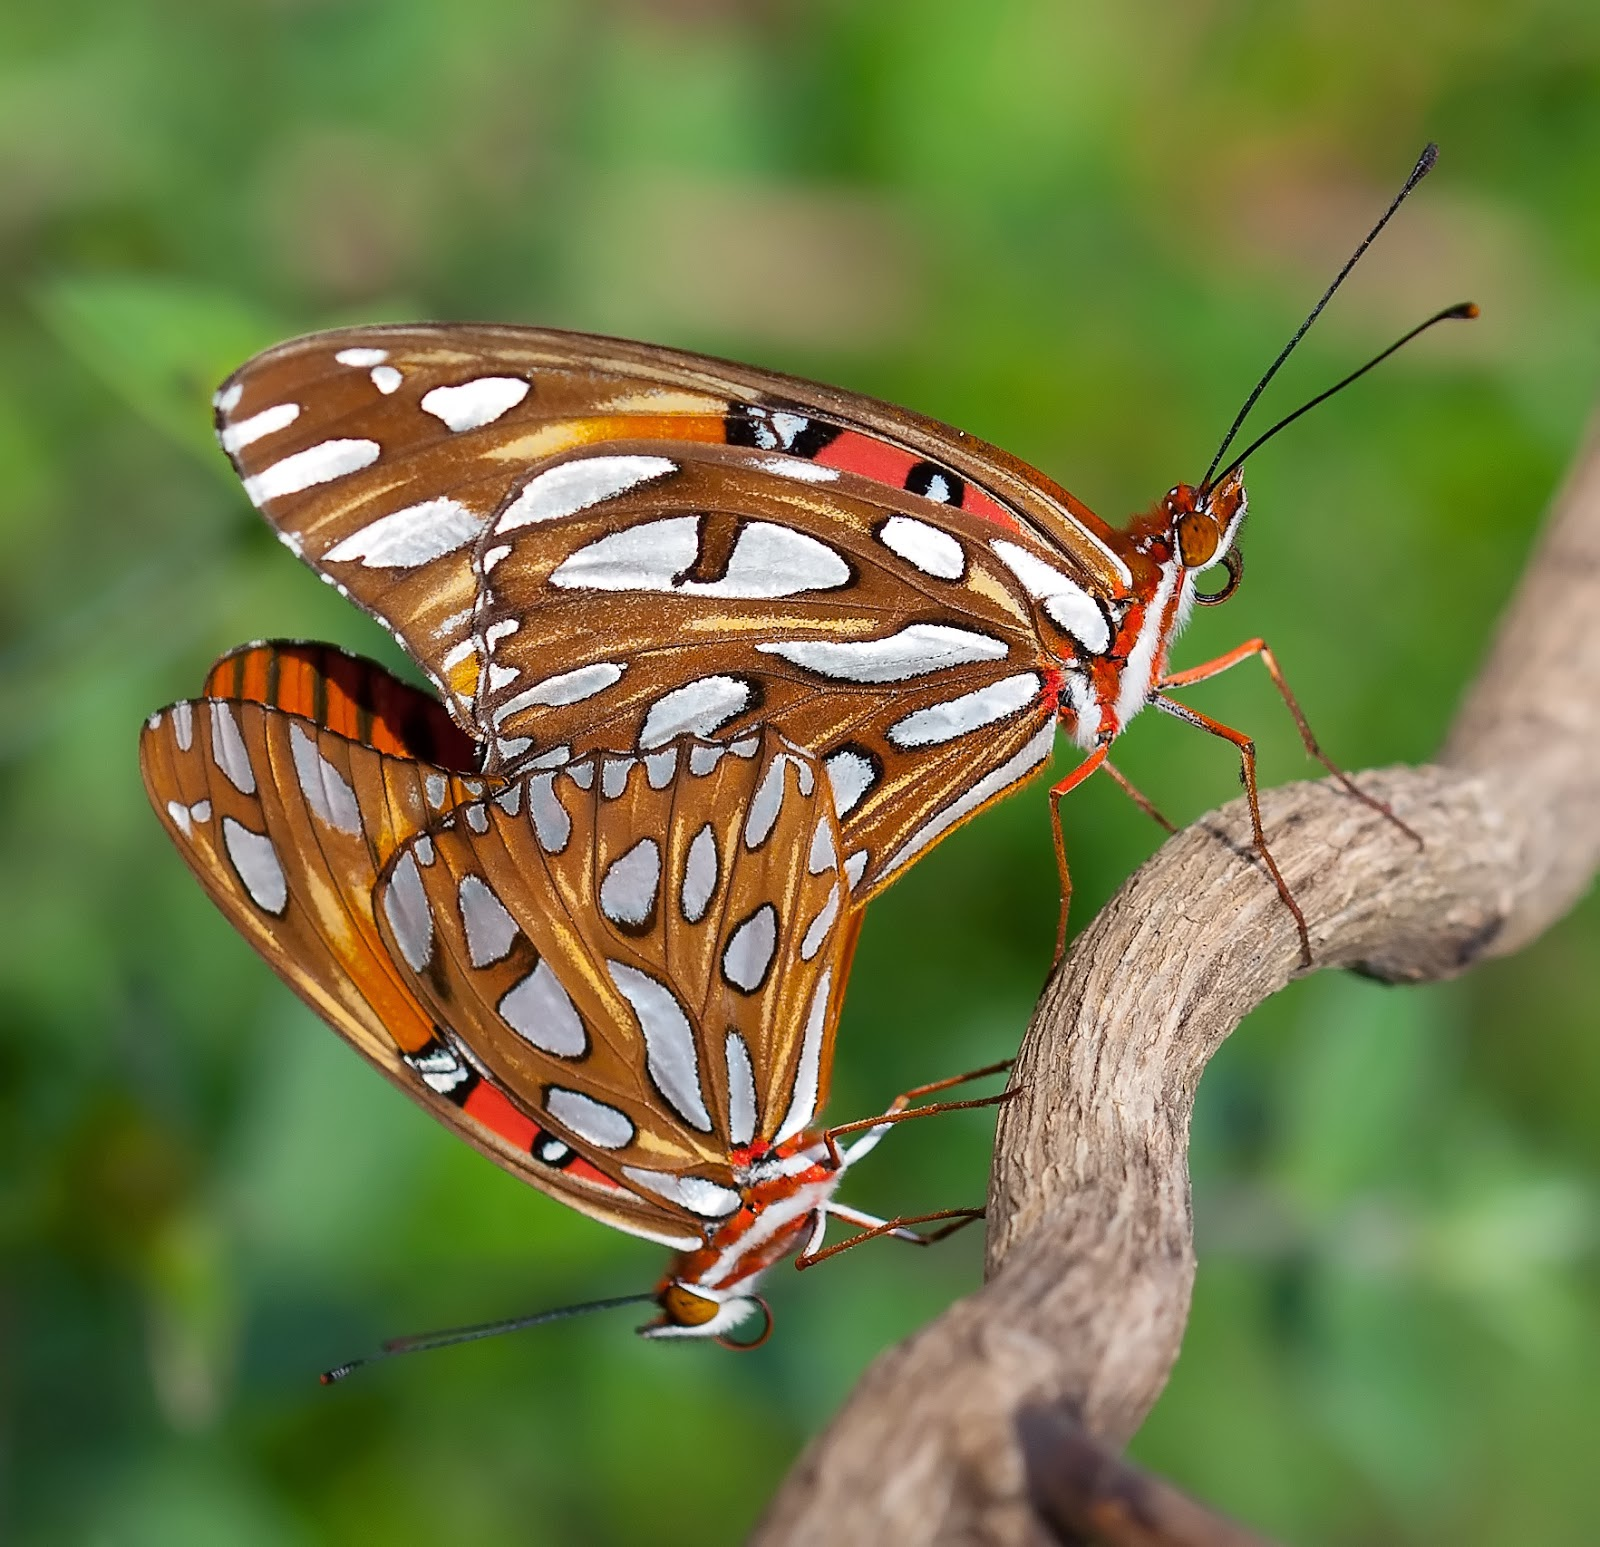 Insects: Gulf Fritillaries Mating